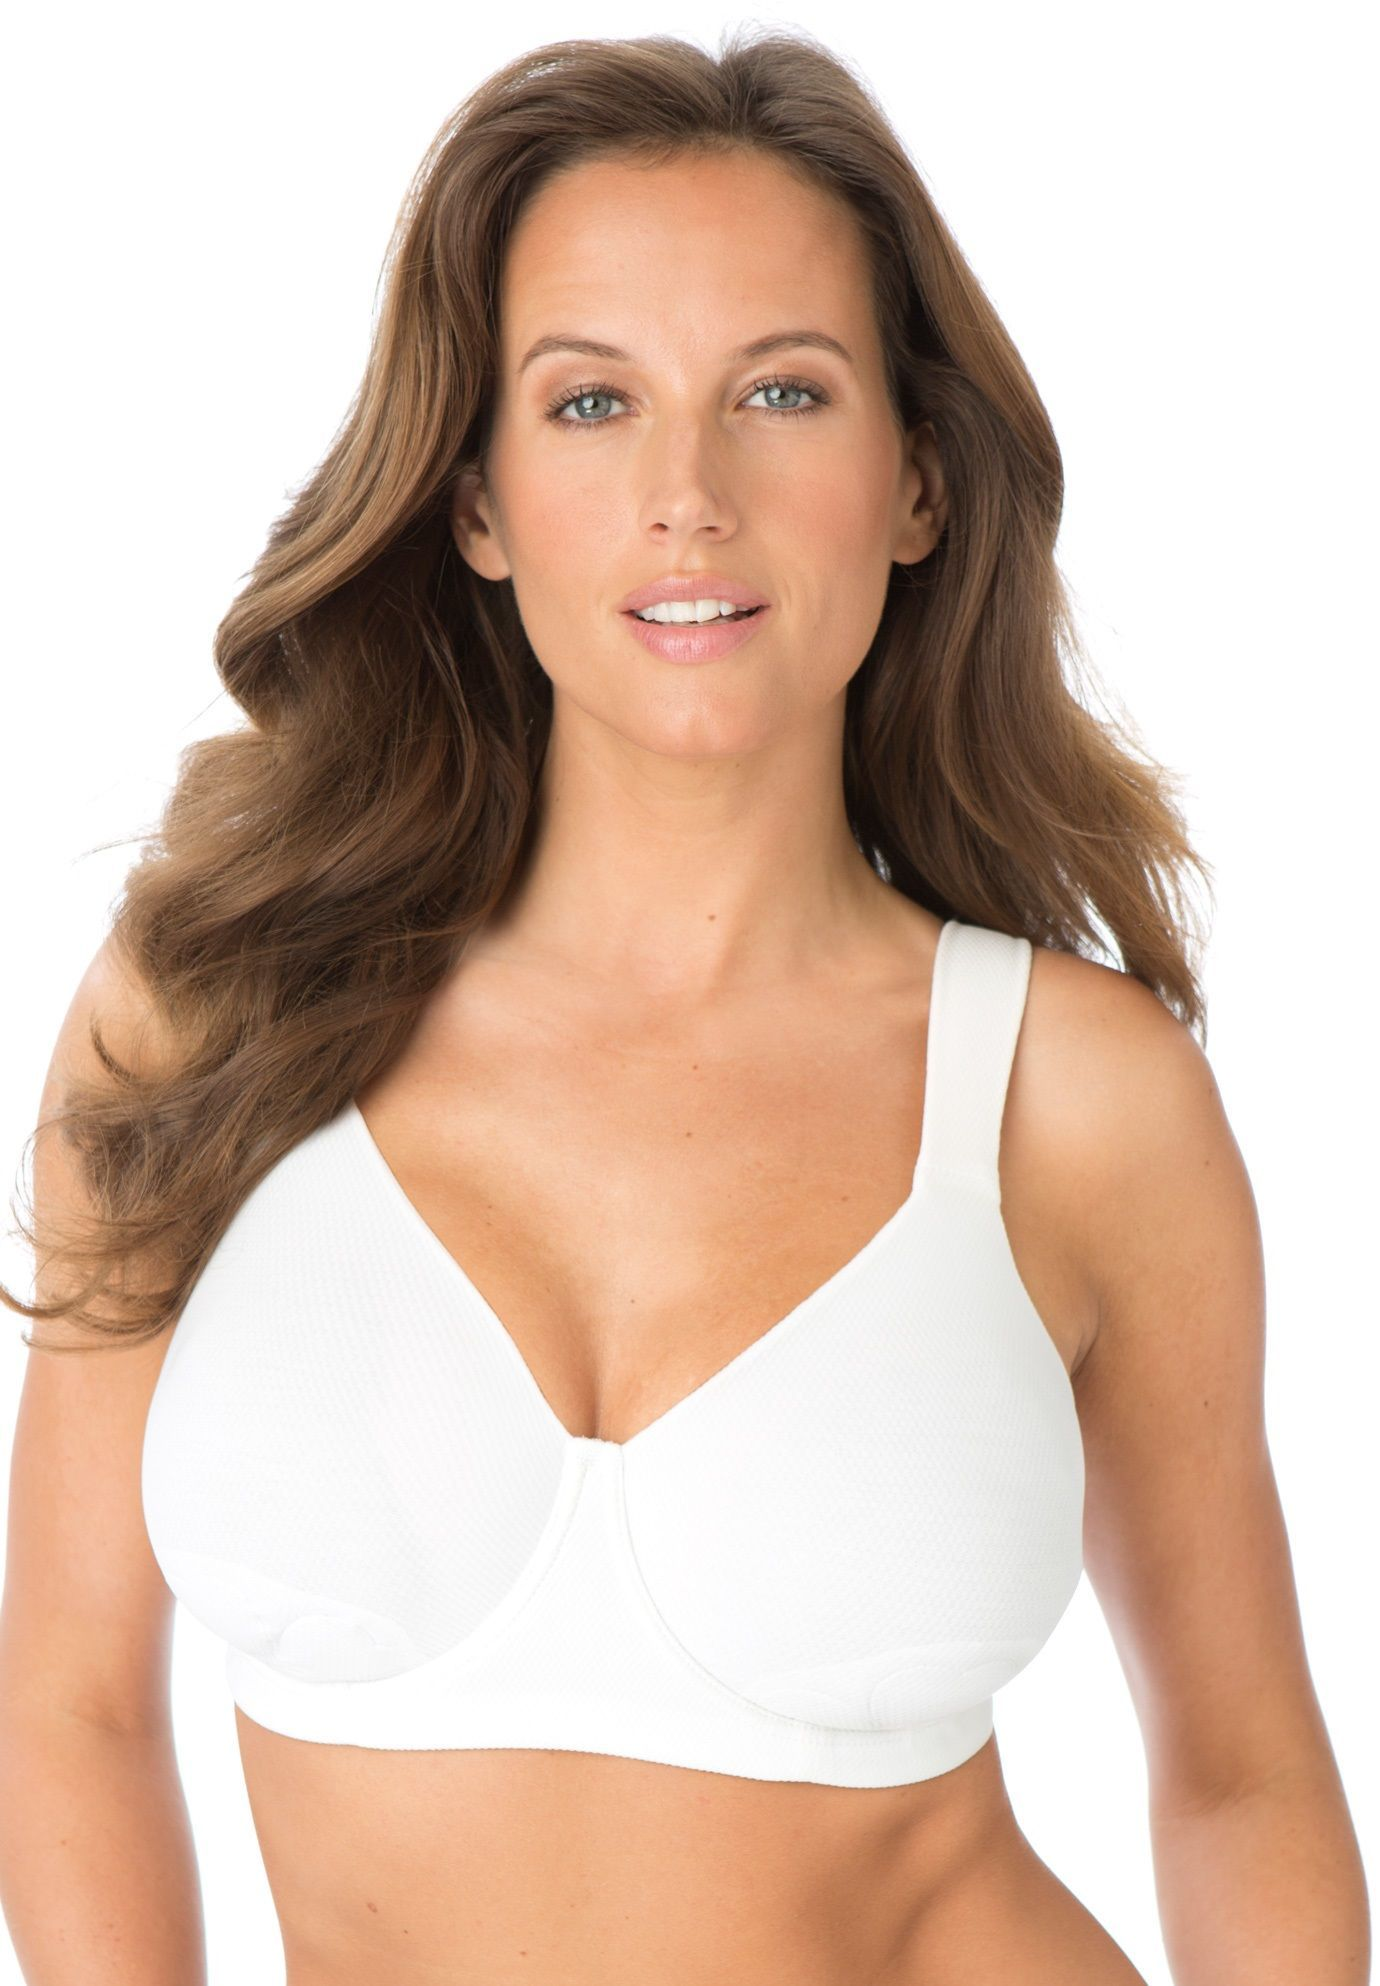 5a60ba4ca1 Petal Boost Underwire Bra by Comfort Choice - Women s Plus Size Clothing